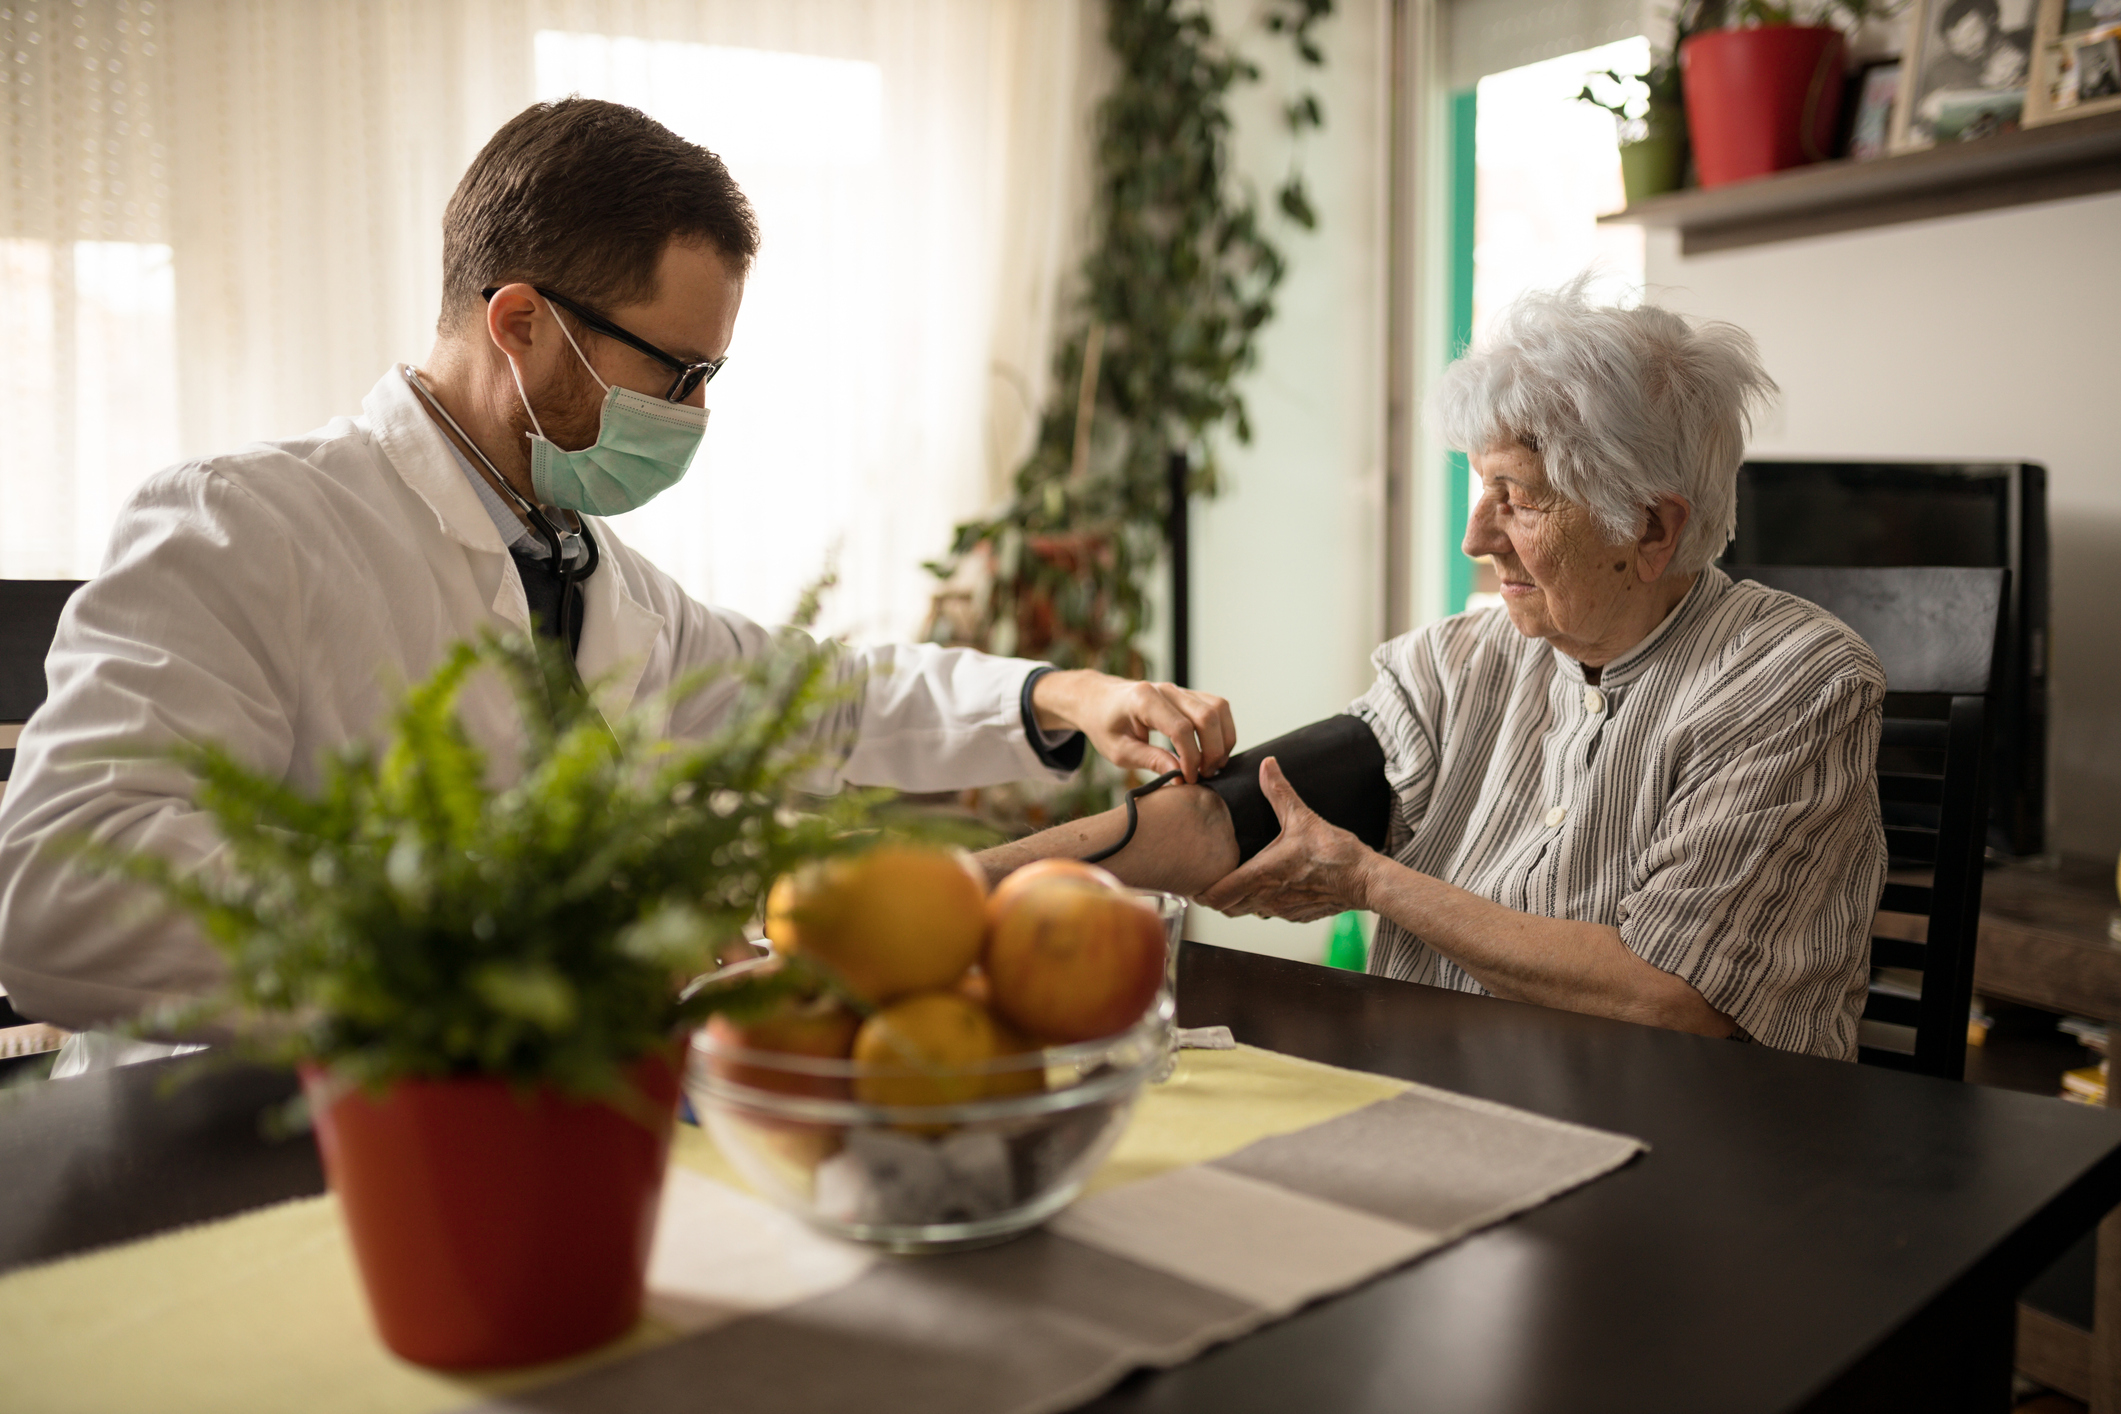 Home care professional caring for senior adult